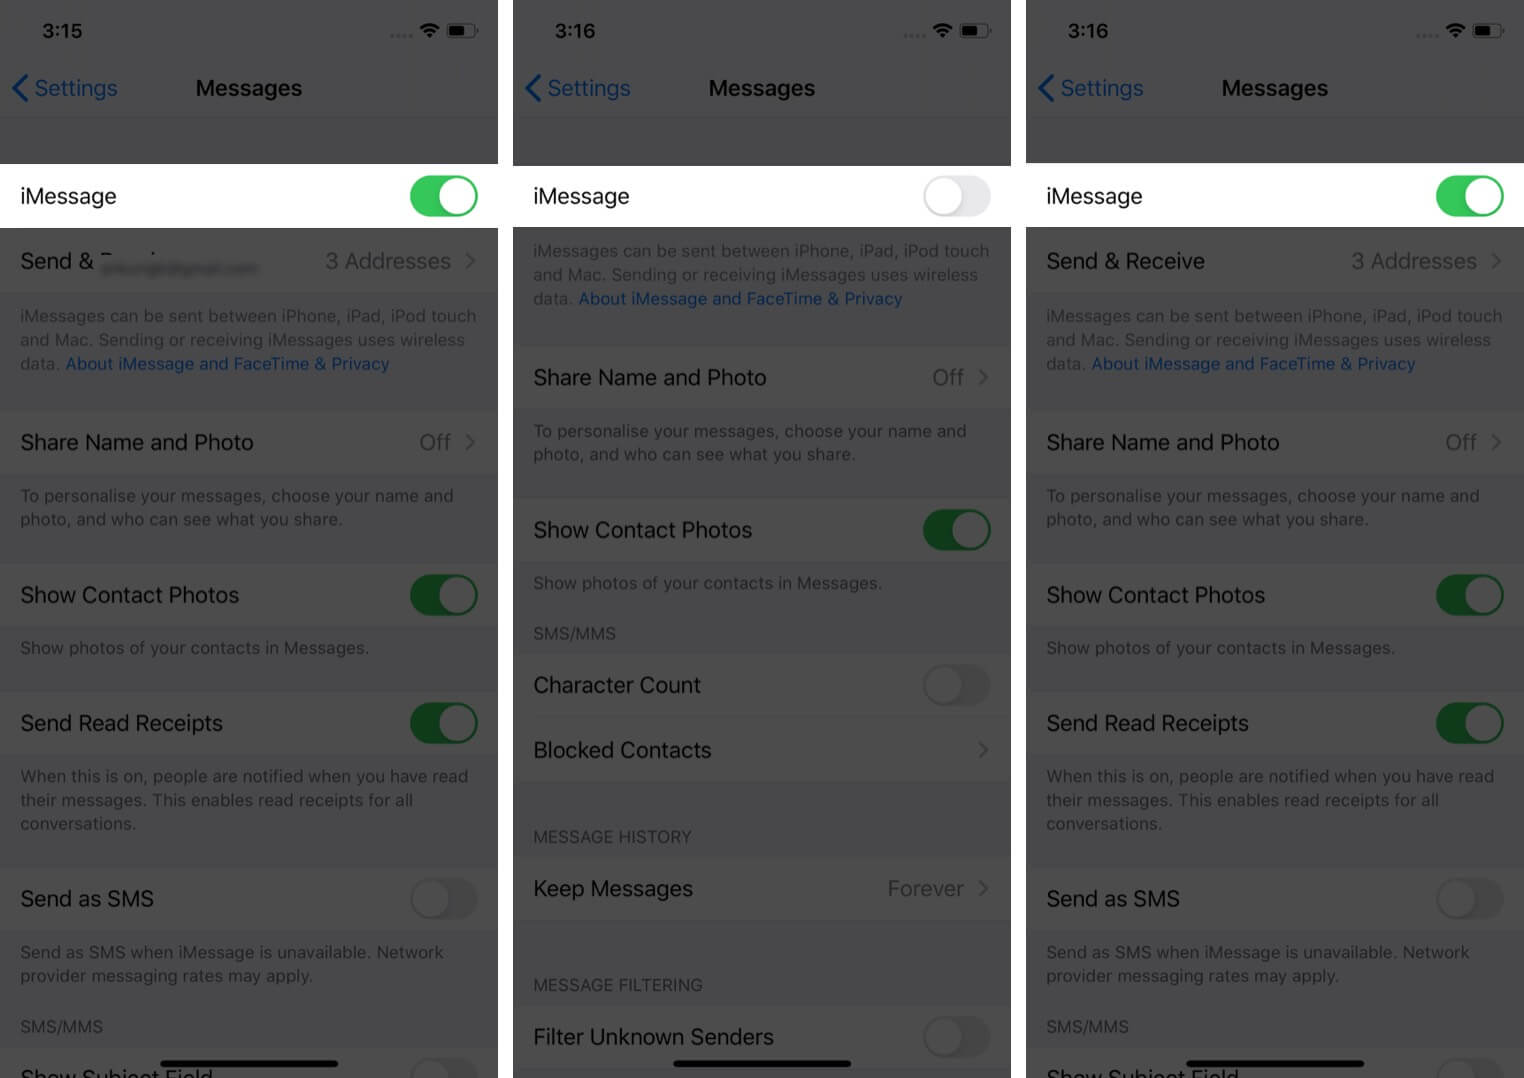 Toggle iMessage on iPhone